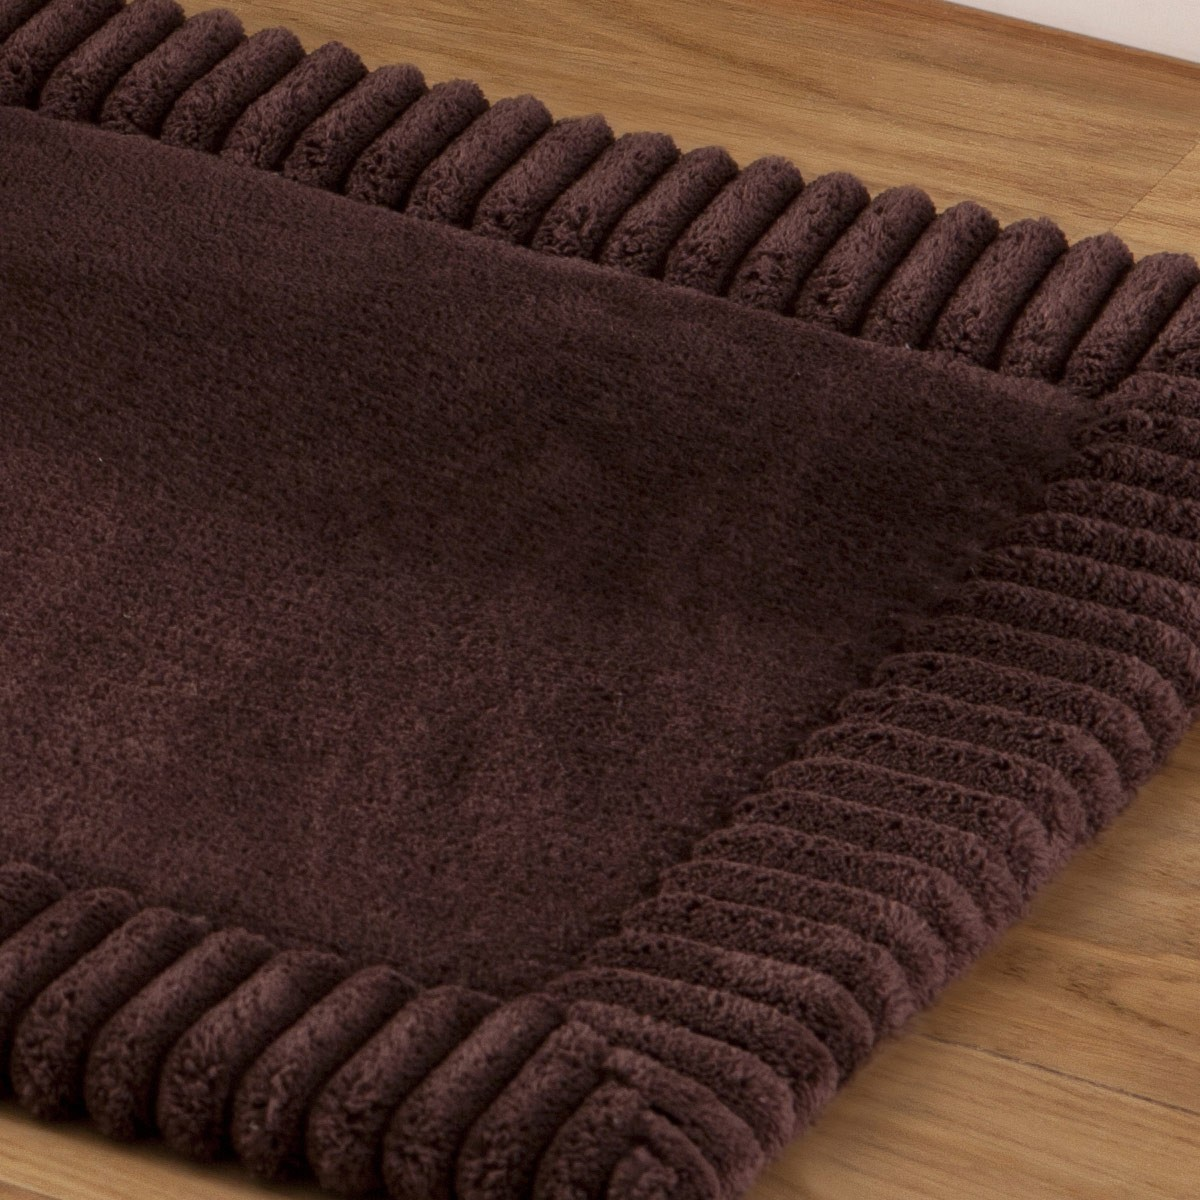 tapis bain chenille marron tapis salle de bain tradition des vosges. Black Bedroom Furniture Sets. Home Design Ideas